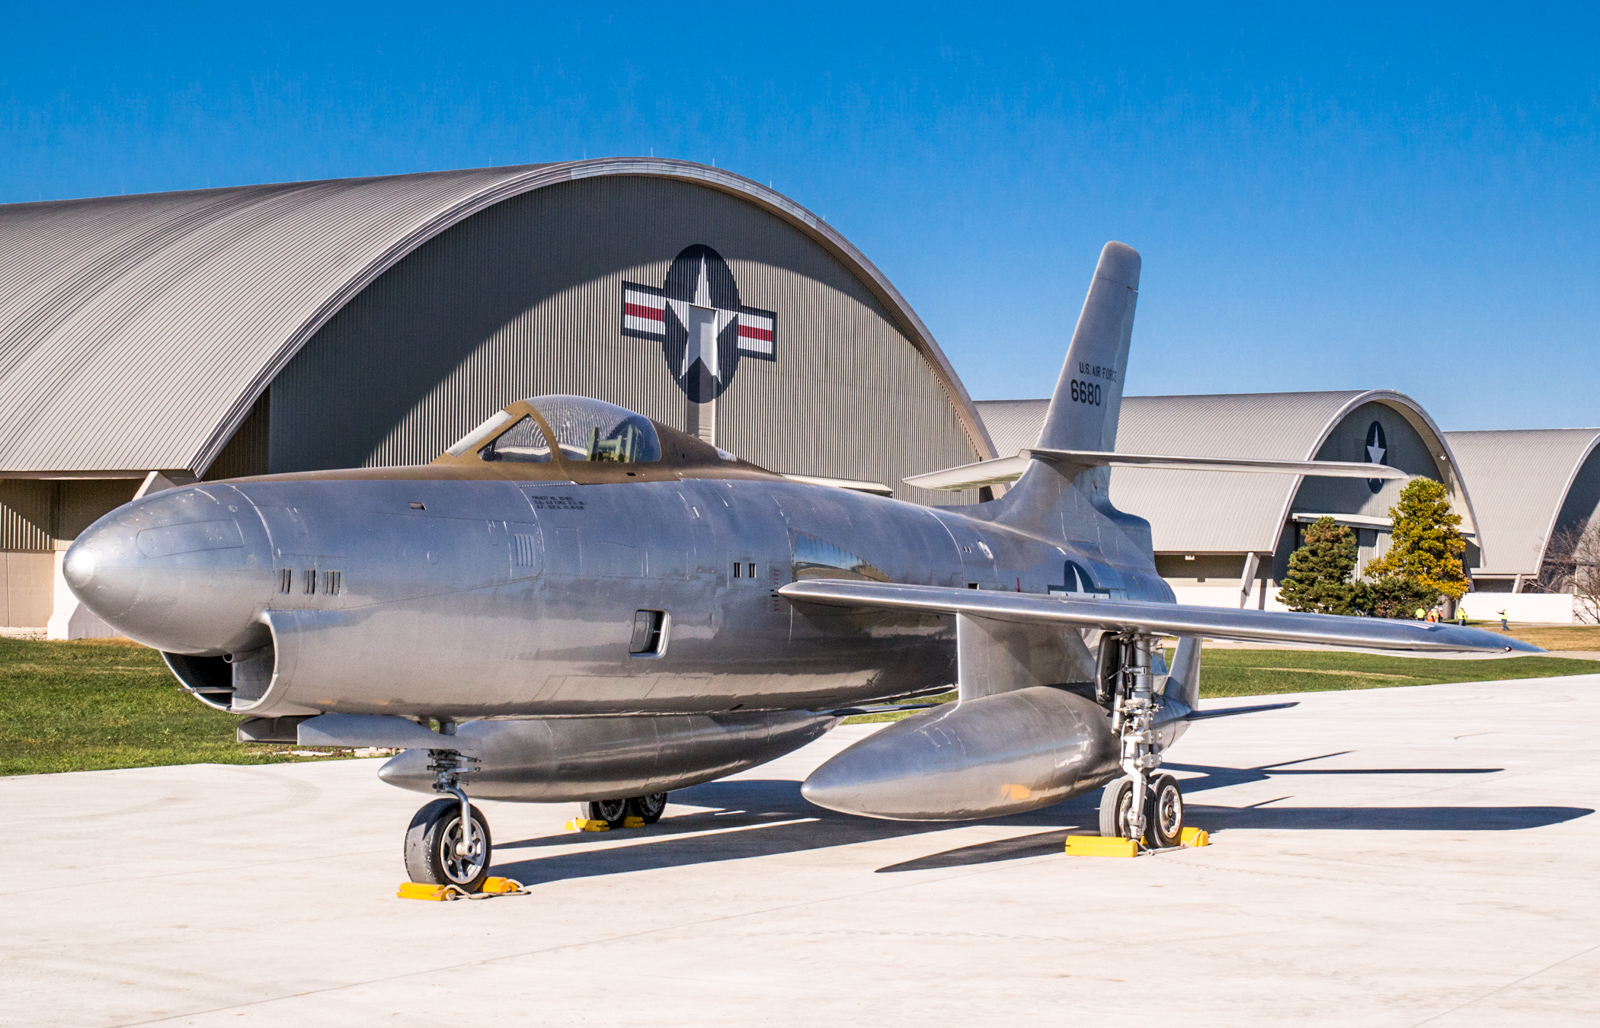 The Republic XF-91 Thunderceptor was a heavily modified development of the F-84 Thunderjet program, but never went into production. (U.S. Air Force photo by Ken LaRock)